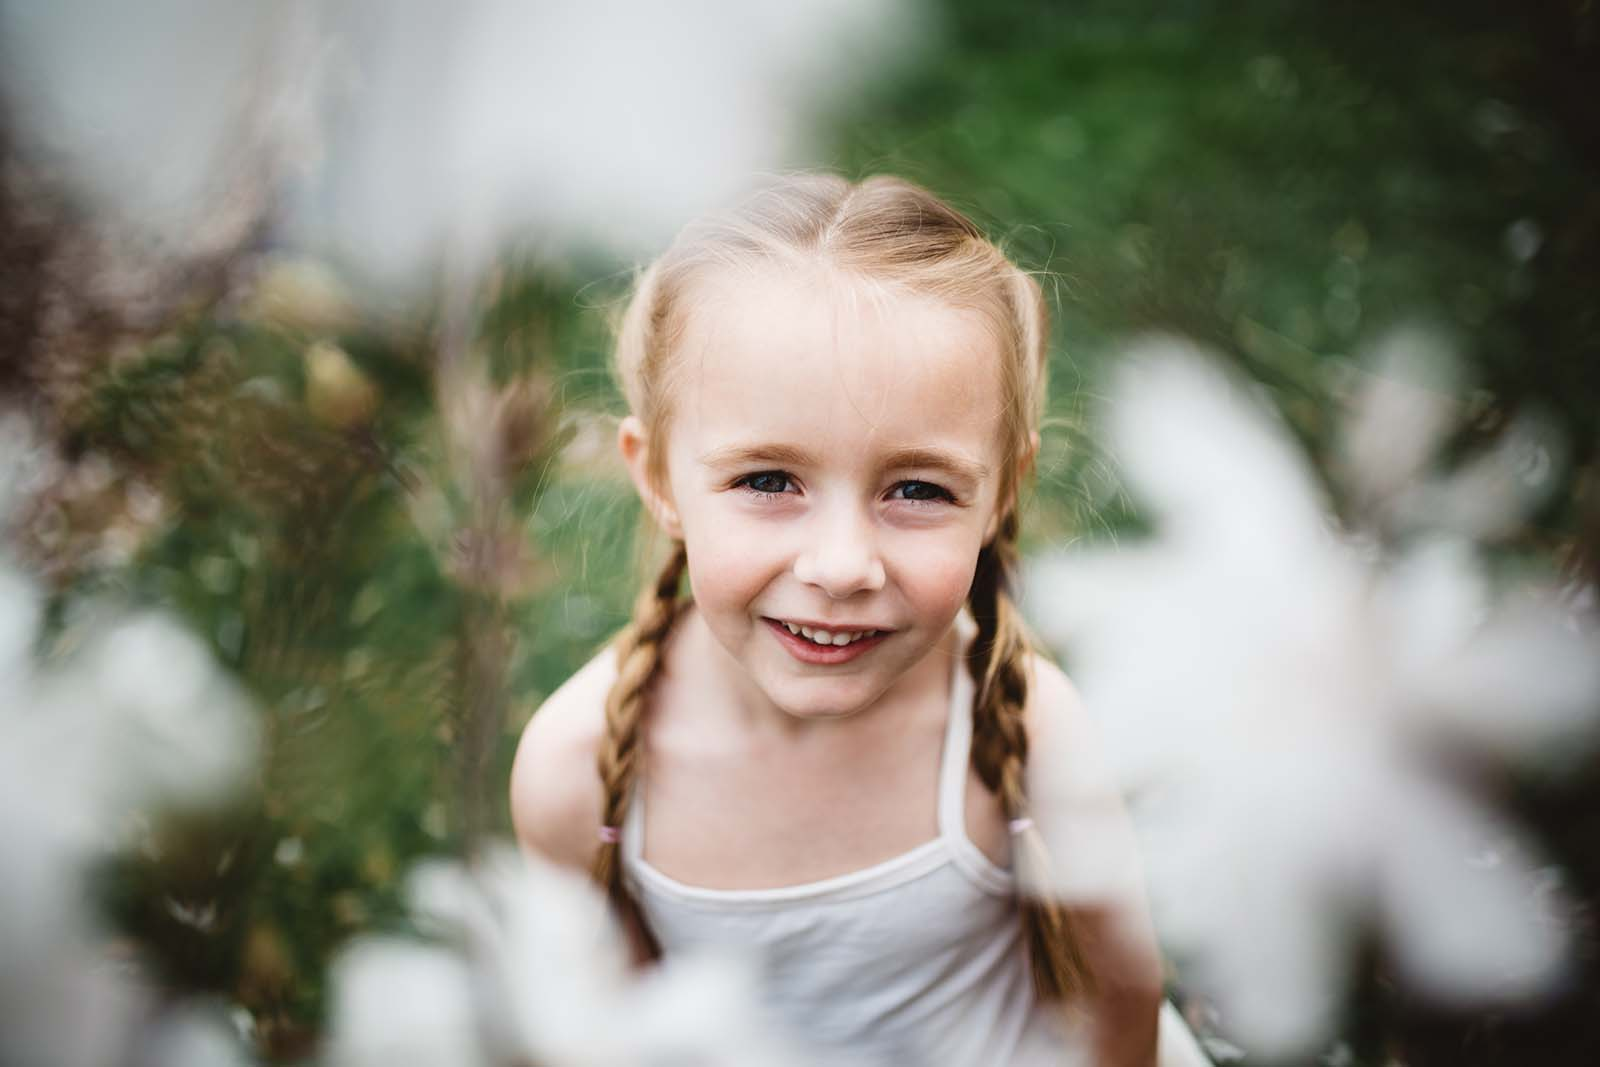 A smiling girl through flowers. Finding balance with photography and motherhood